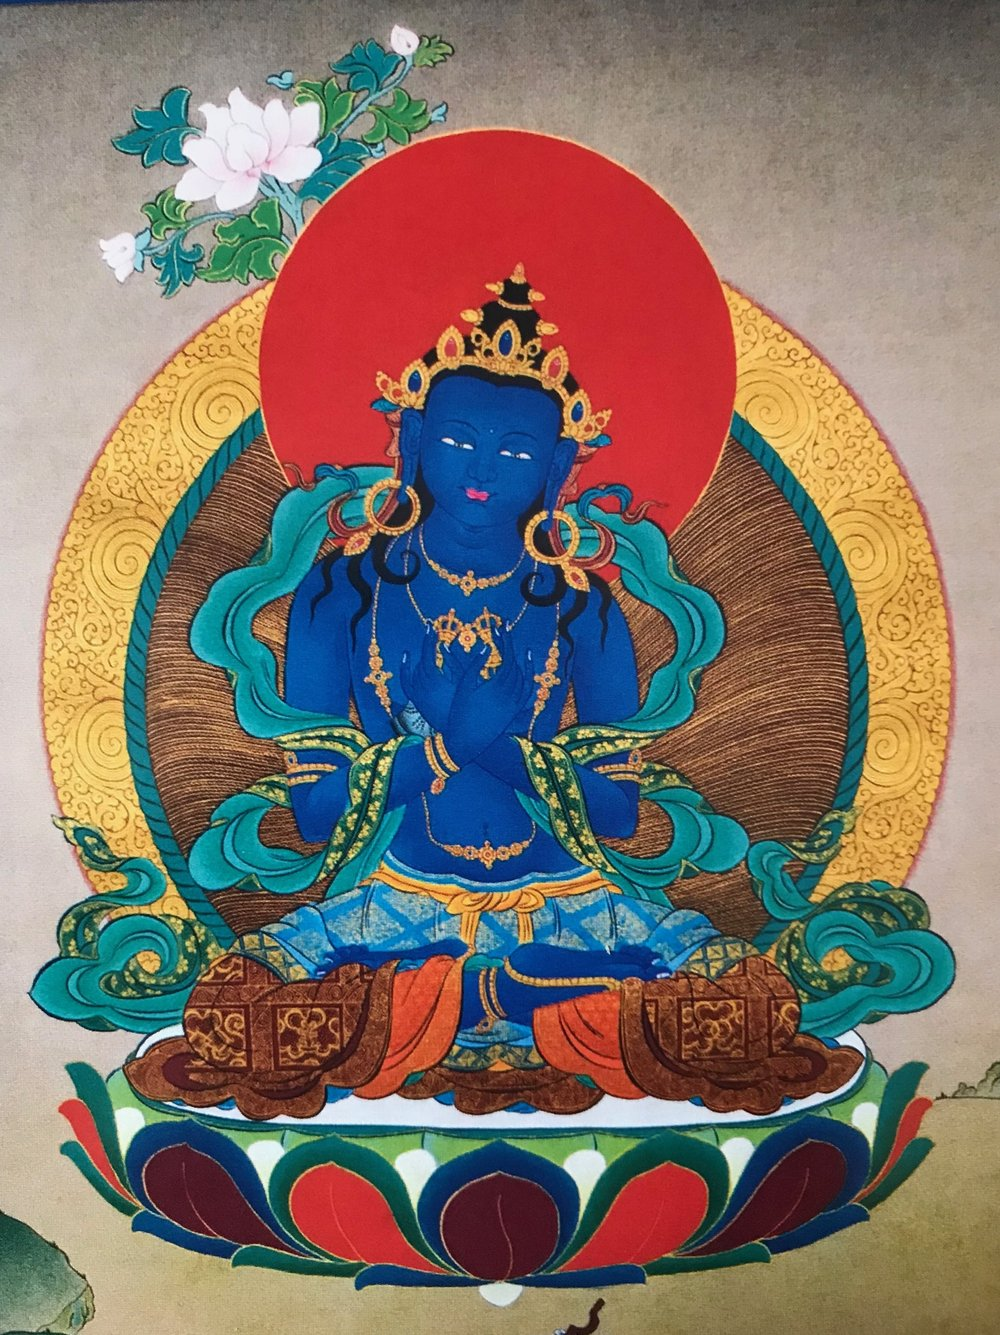 "- The Kalachakra Tantra is the most comprehensive and effective system within Tibetan Buddhism, valued by all schools as ' the King of Tantras' . The Jonang, however, is the tradition that has the specific focus of Kalachakra practice, and is the only tradition that holds the entire Kalachakra system, with the higher stages of the profound and unique completion practice known as the ""Six Vajra Yogas"